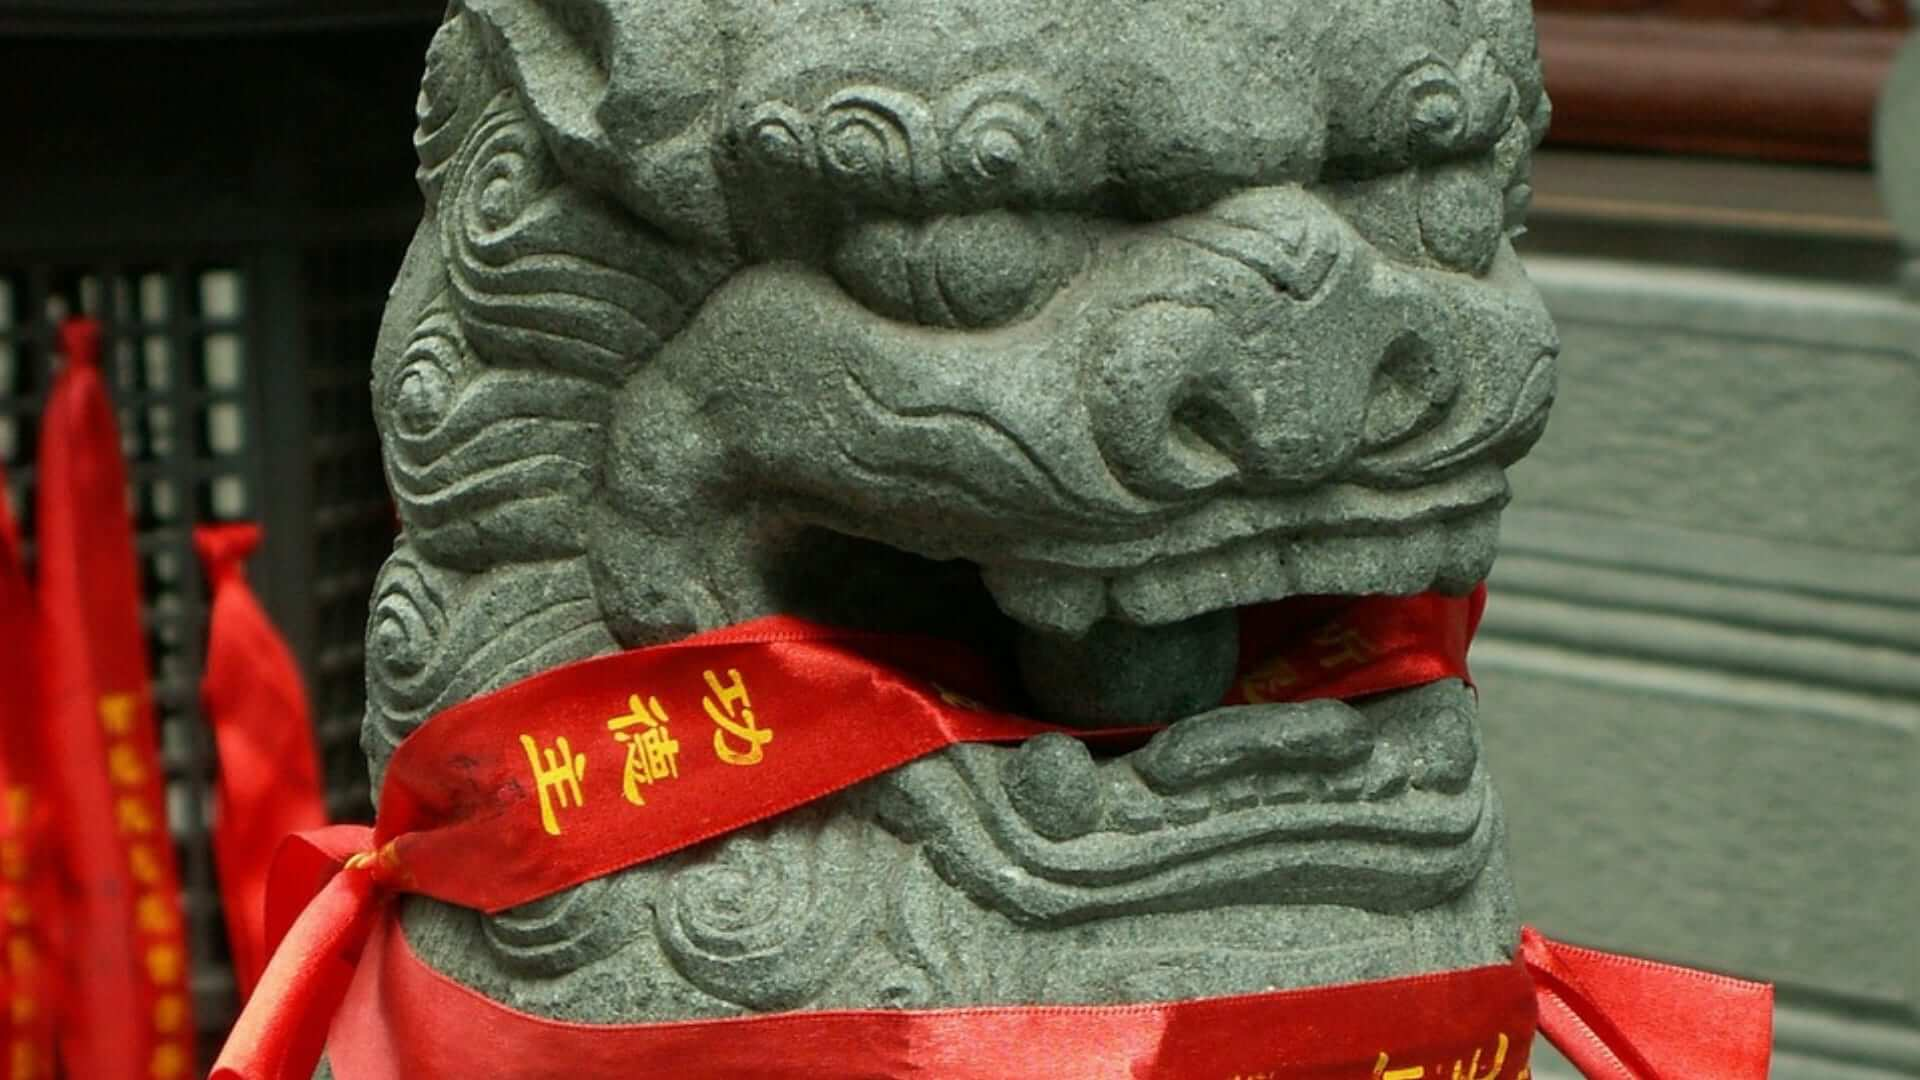 A Chinese lion made of stone with a red ribbon in his mouth at a temple in Shanghai.